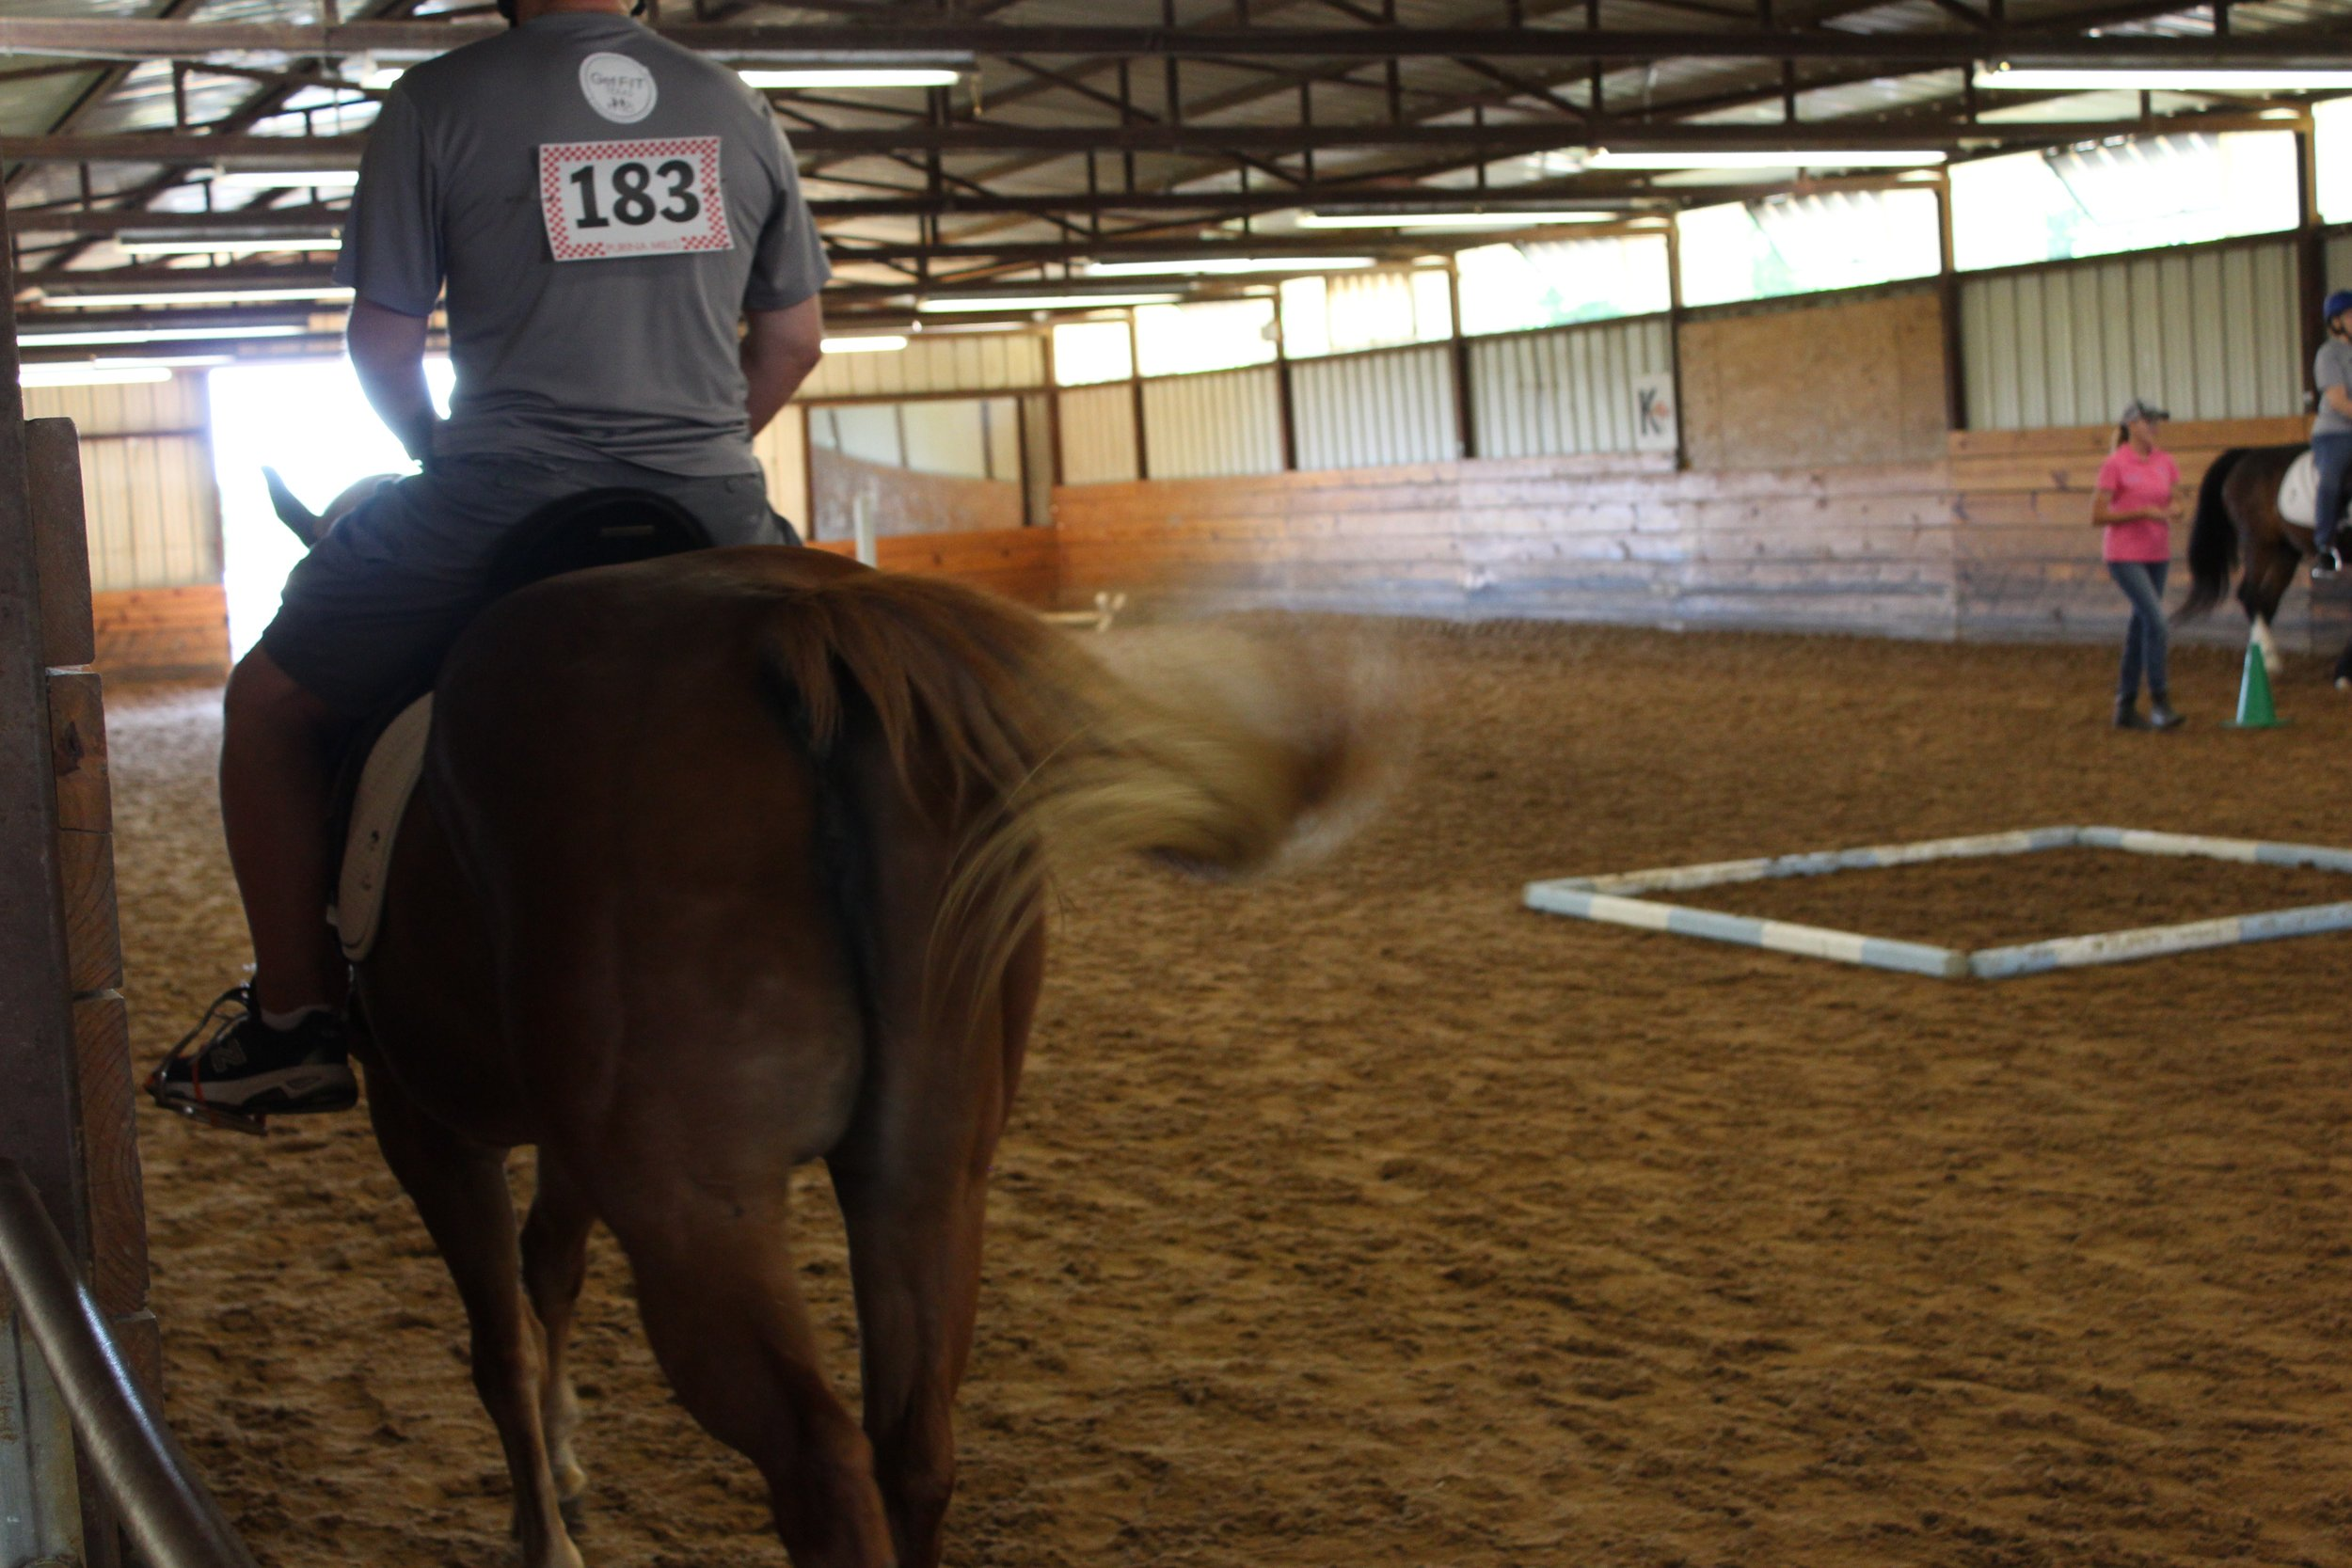 Larry's first horse show competition